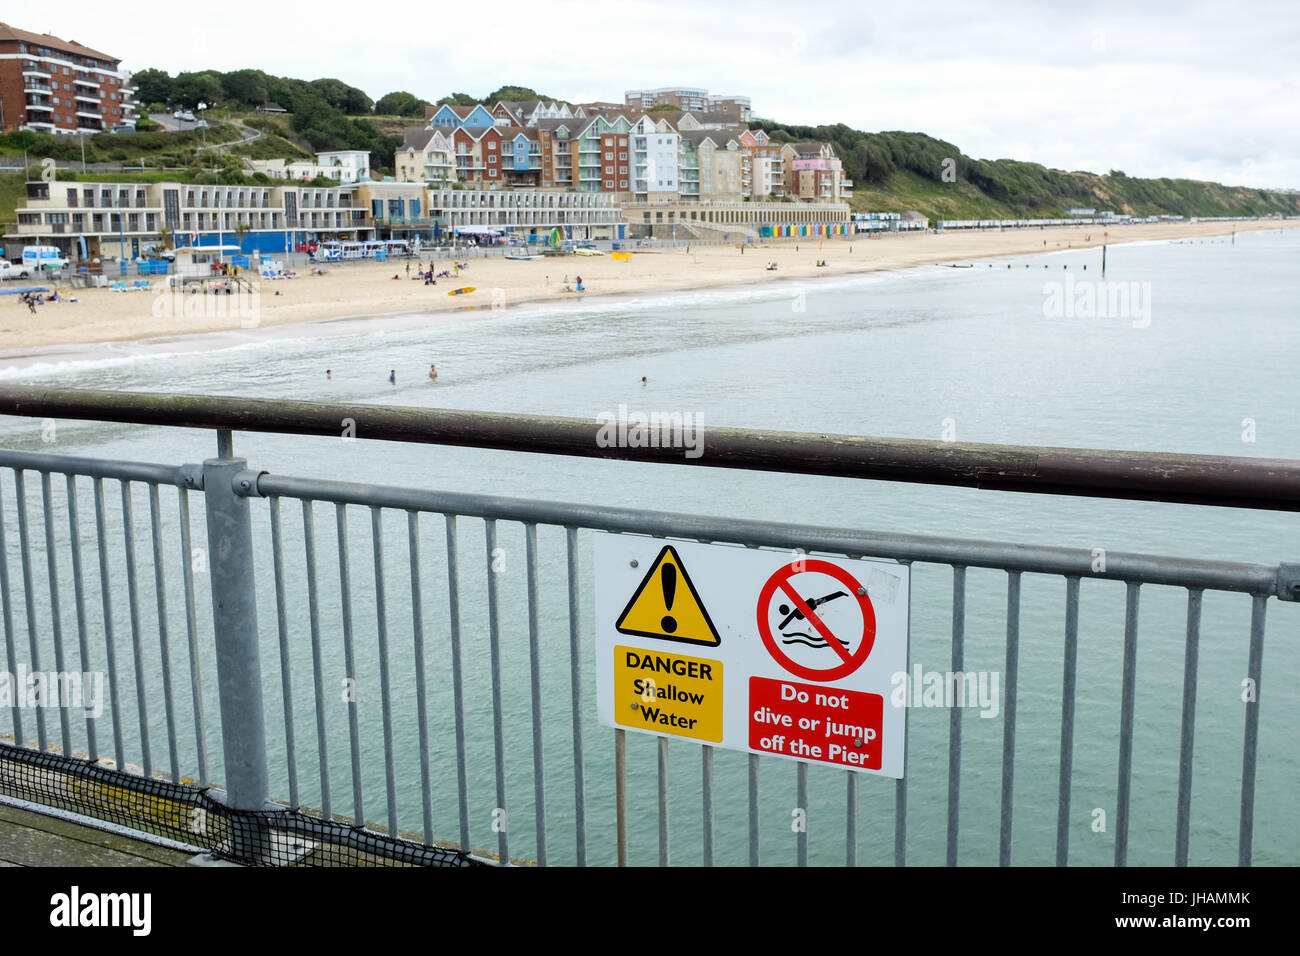 A sign warning people of shallow sea water and telling people not to dive or jump off the pier (Boscombe pier near - Stock Image